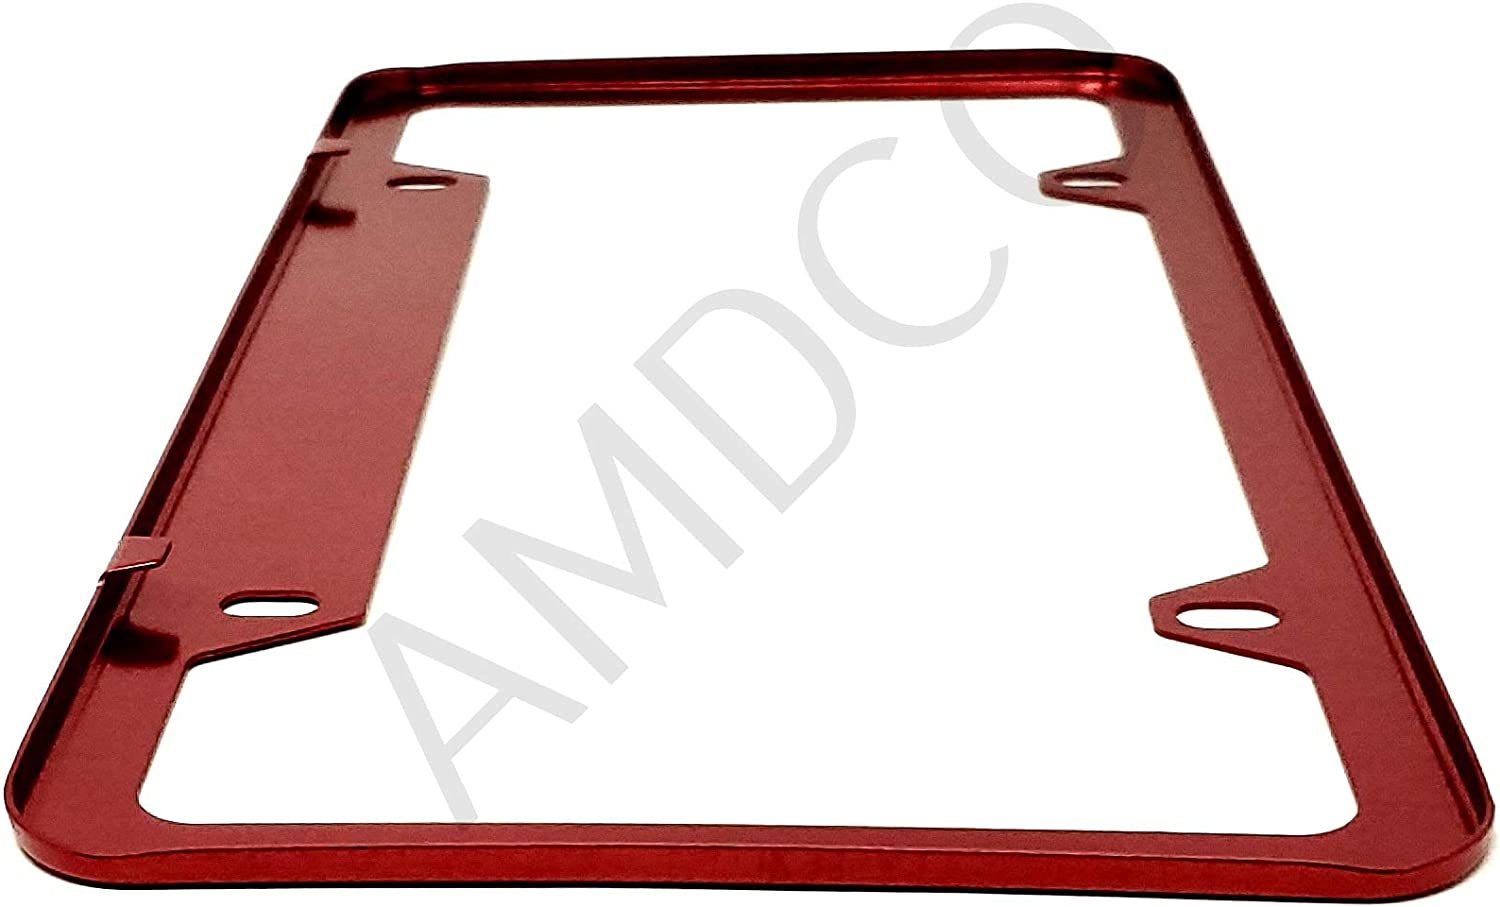 AMDCO Pack of 1 for lfa nx UX rx 270 460 470 gx lx License Plate Cover Holder Frame Badge Stickers Decals with Strong 3M Includes Instructions Measure Before Purchase Fitment RED